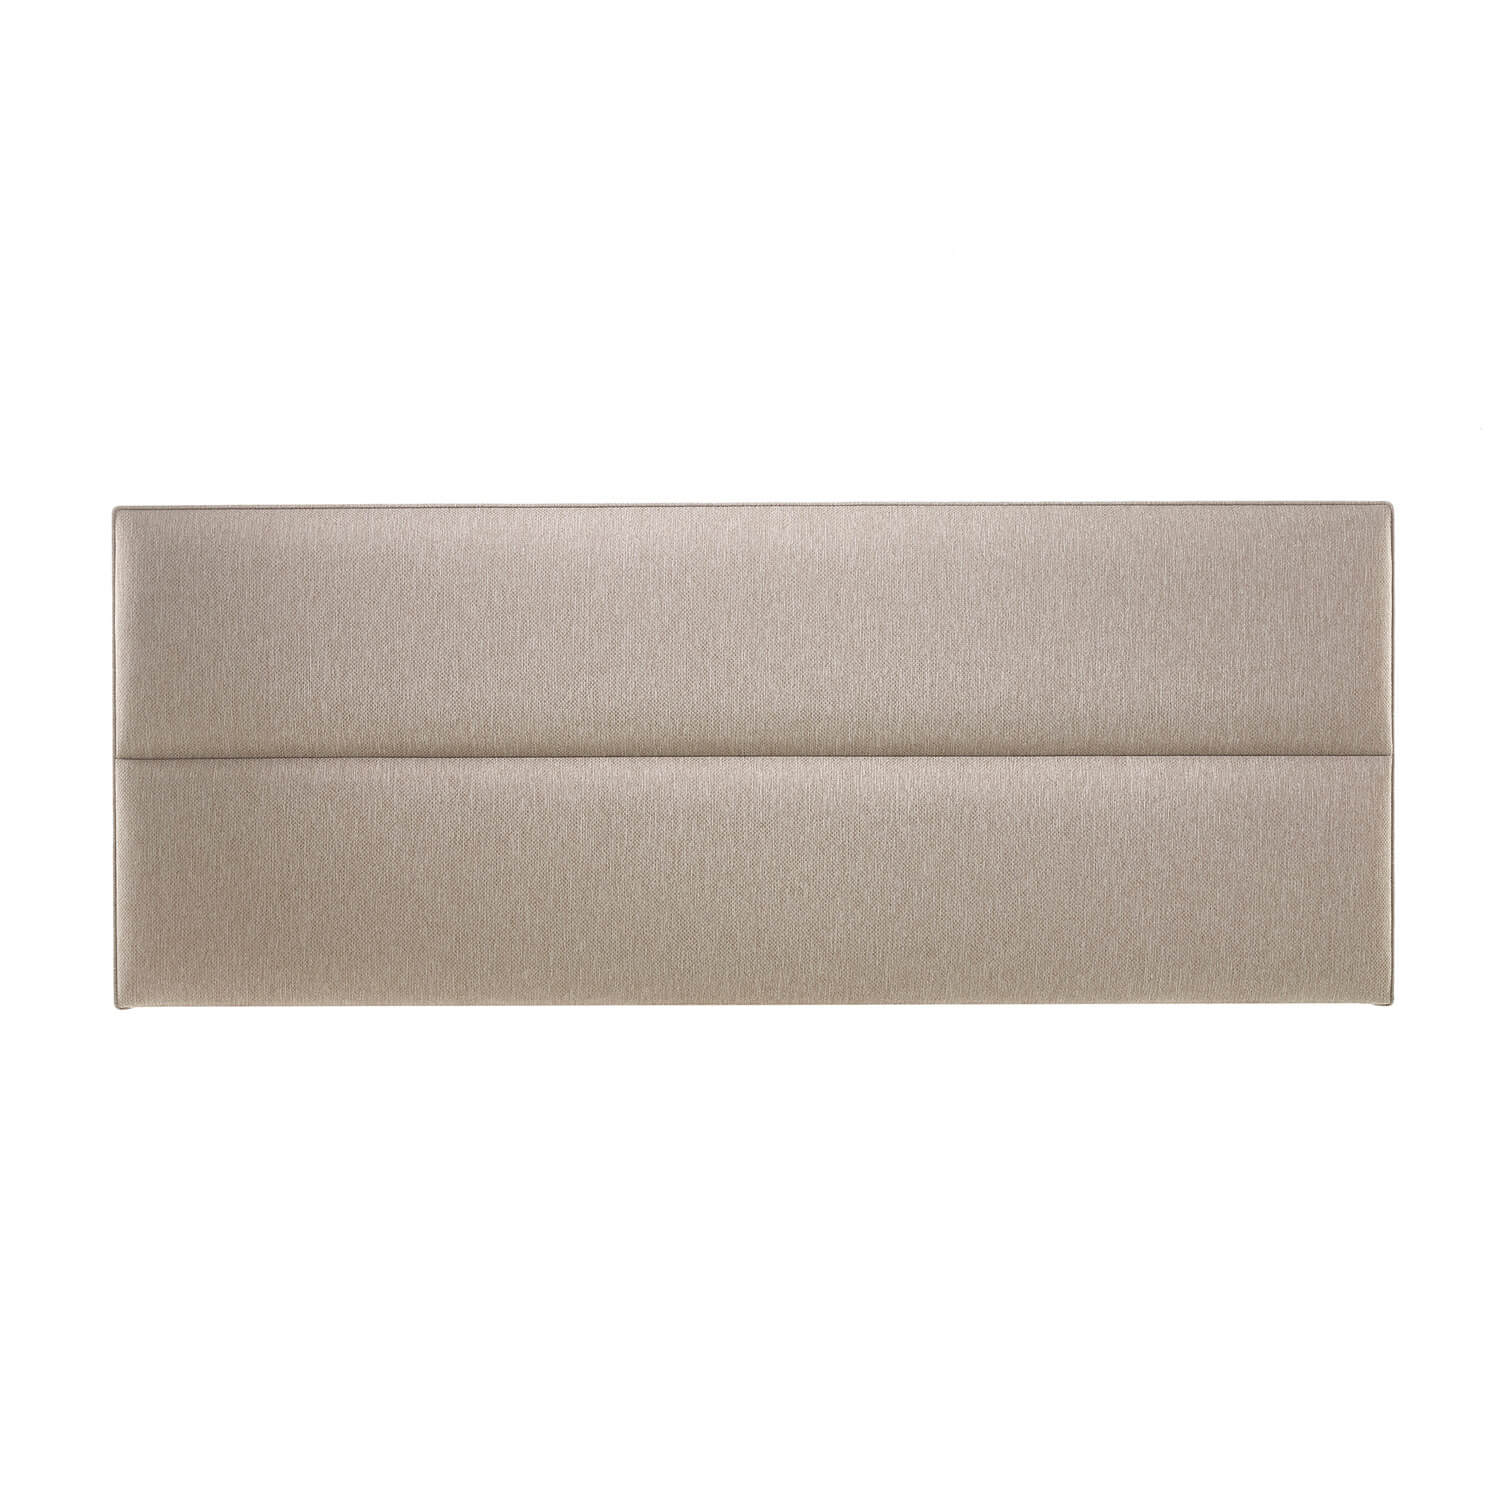 Myers headboard 150-Contour-Taupe-Front - Copy